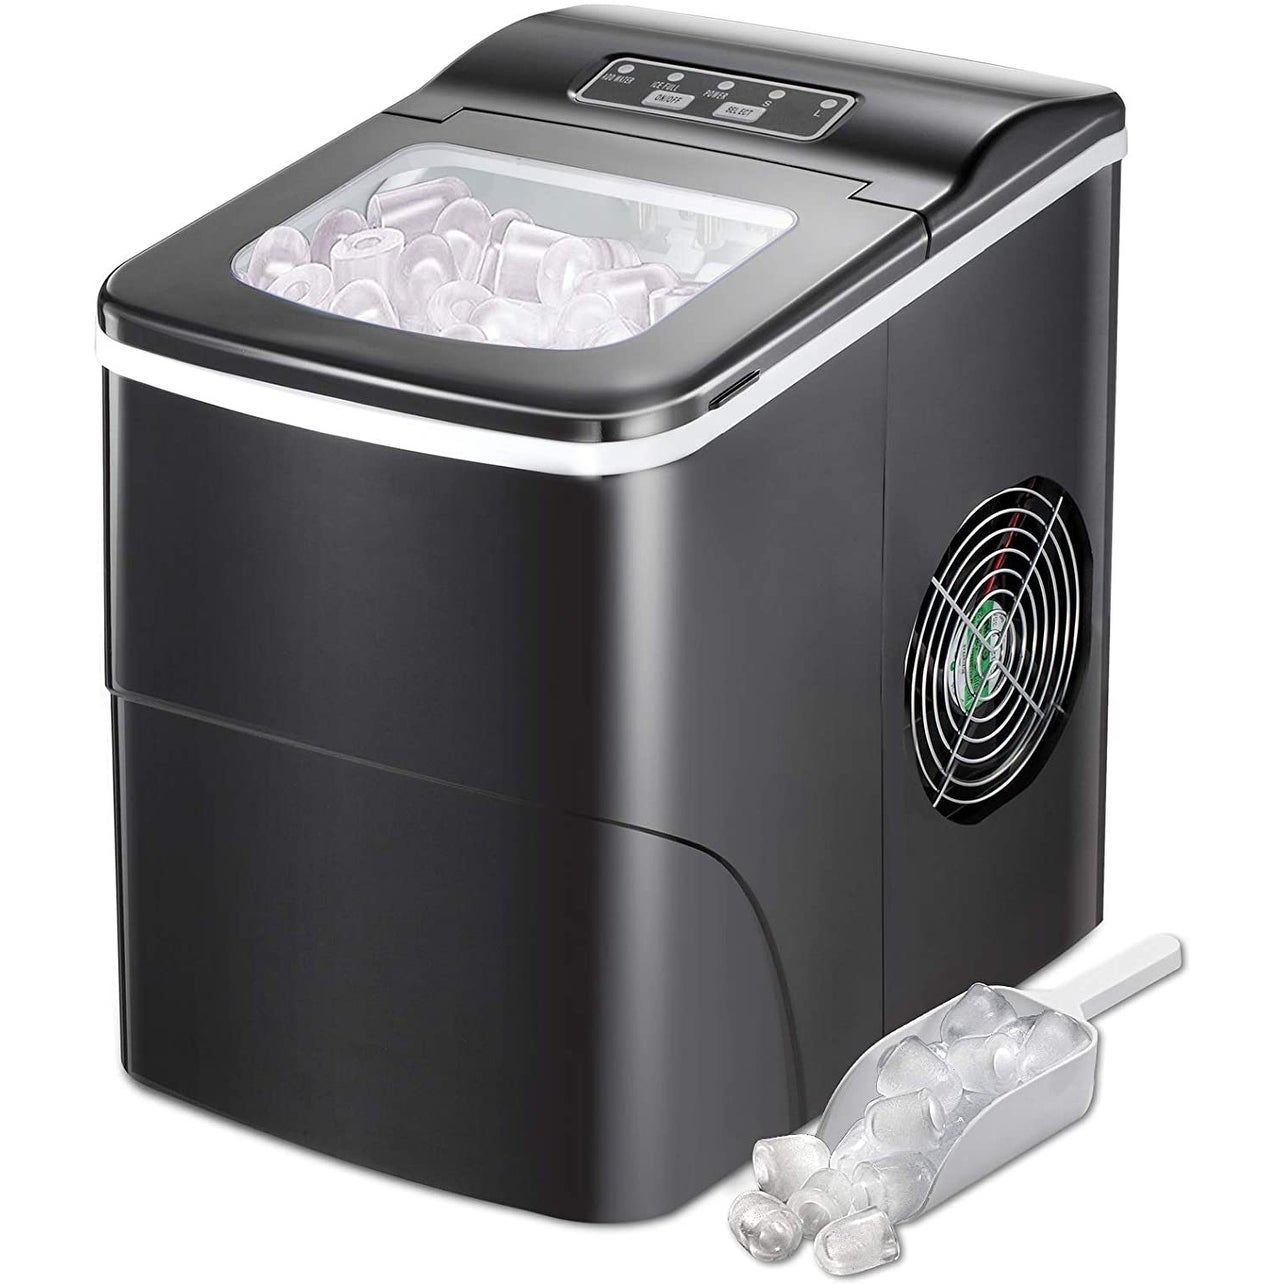 Ice Maker Machine Countertop Portable Ice Cube Makers 26 Lbs In 1 Hrs Overstock 32893479